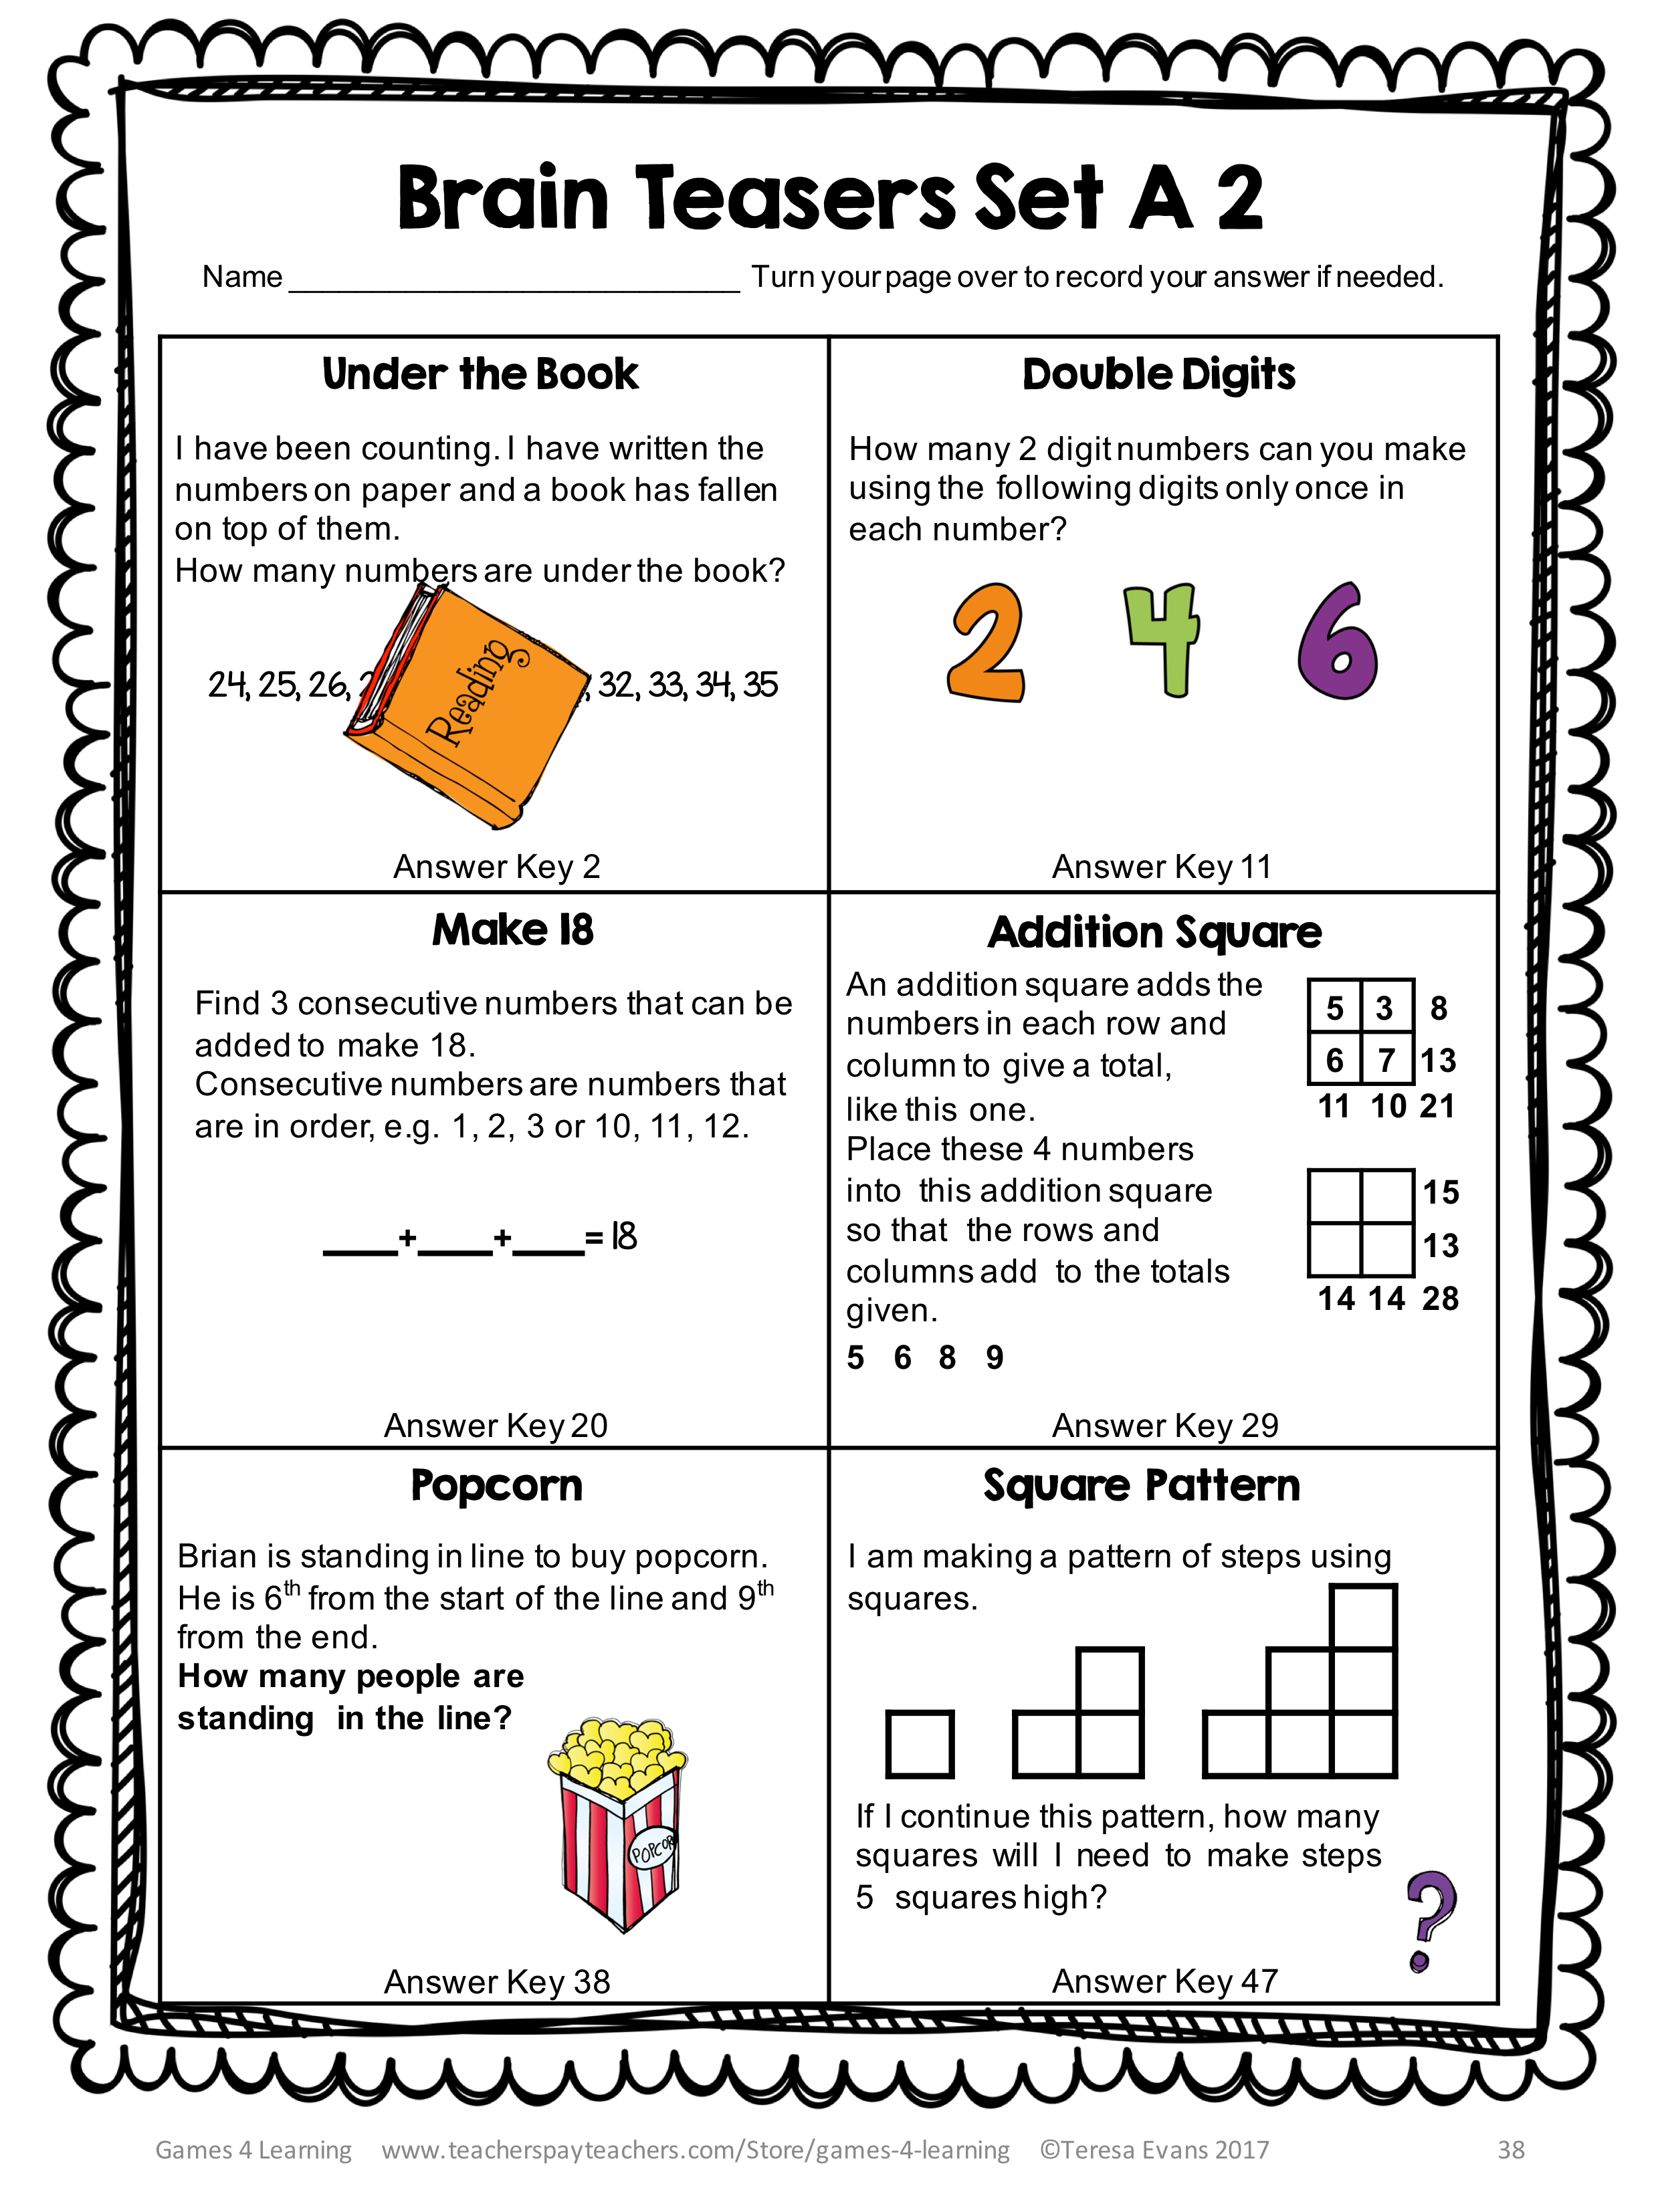 Printable Math Problems and Math Brain Teasers Cards from Games 4 Learning  contains 54 printable cards in large size [ 3308 x 2479 Pixel ]